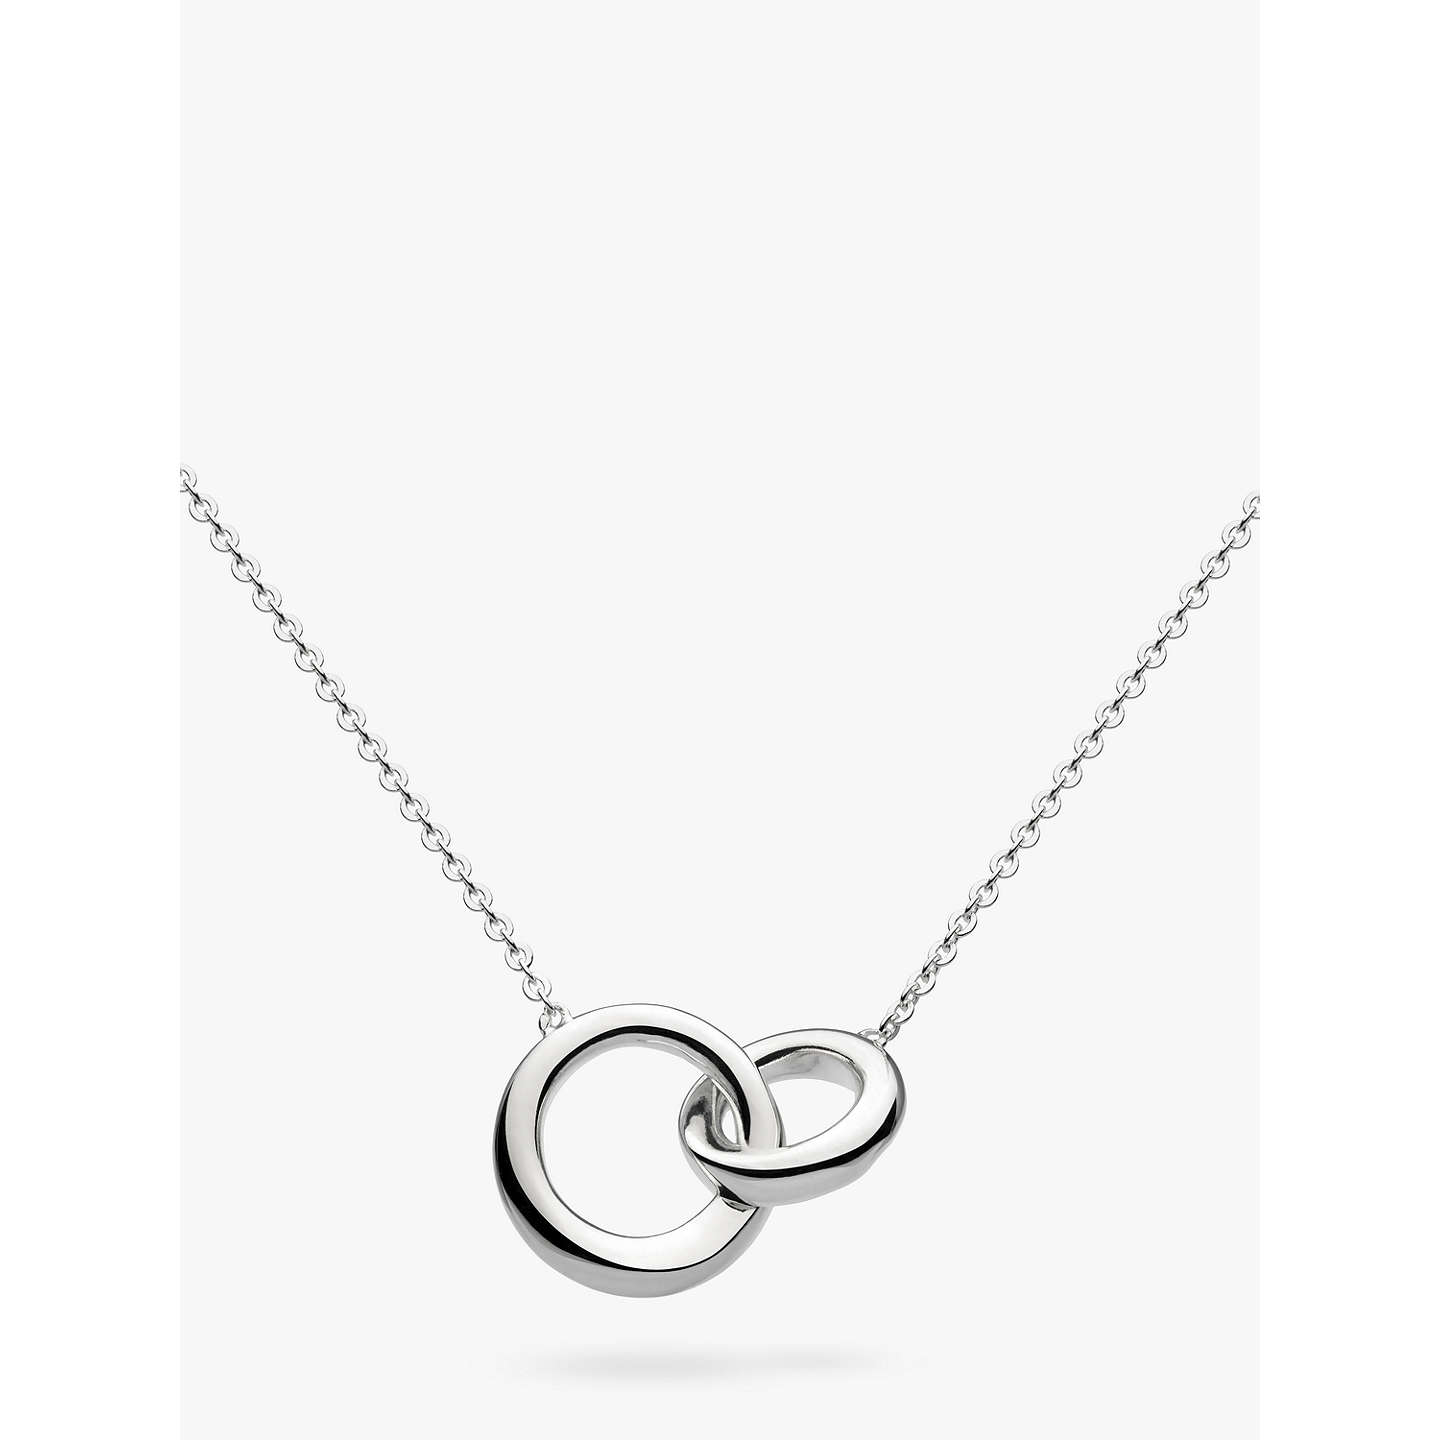 necklaces pendant sterling tiffany in on co ring silver pendants circle ed jewelry chain necklace a